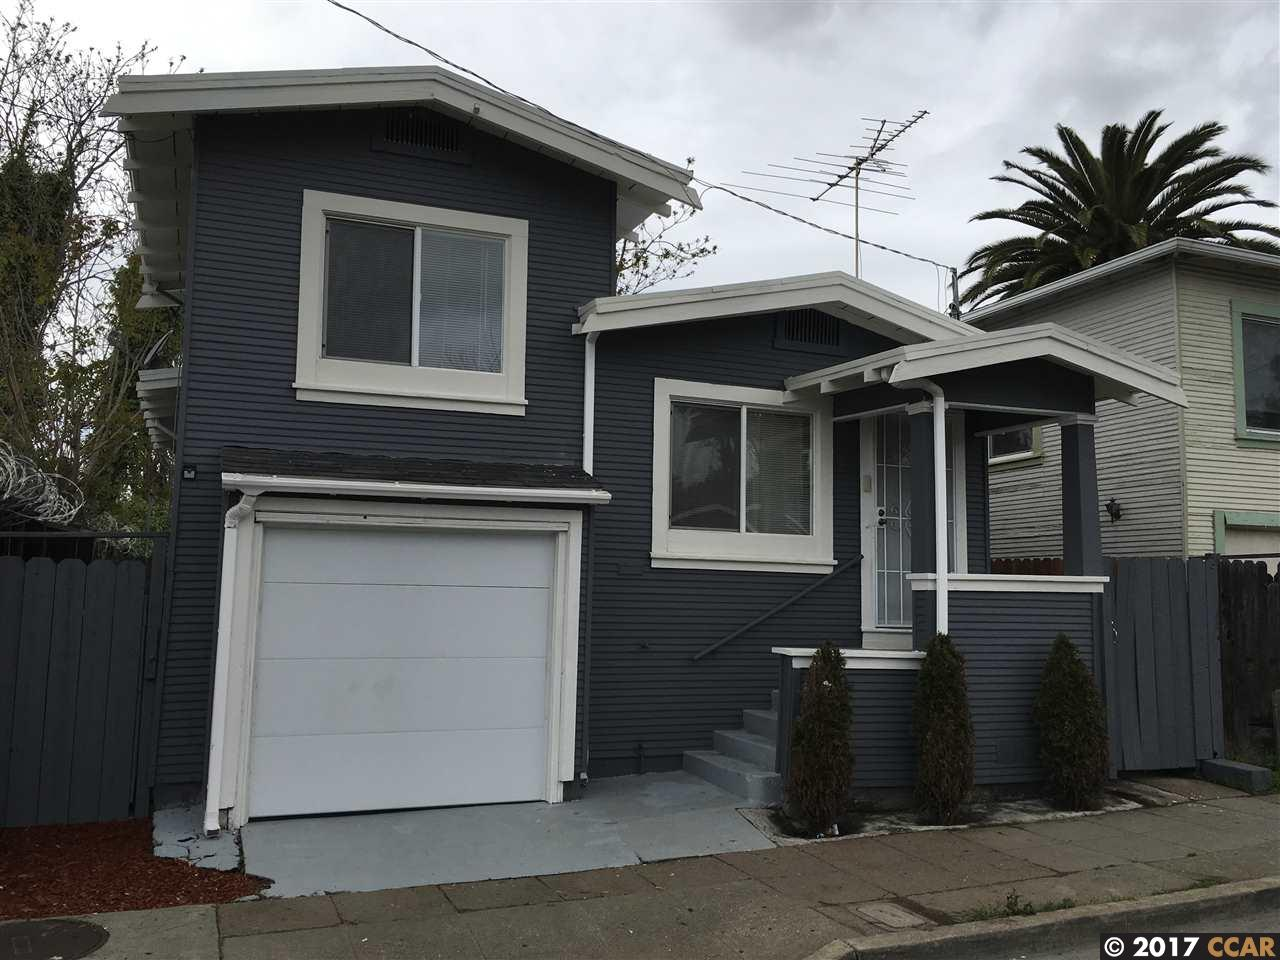 Additional photo for property listing at 2921 Havenscourt Blvd  Oakland, カリフォルニア 94605 アメリカ合衆国